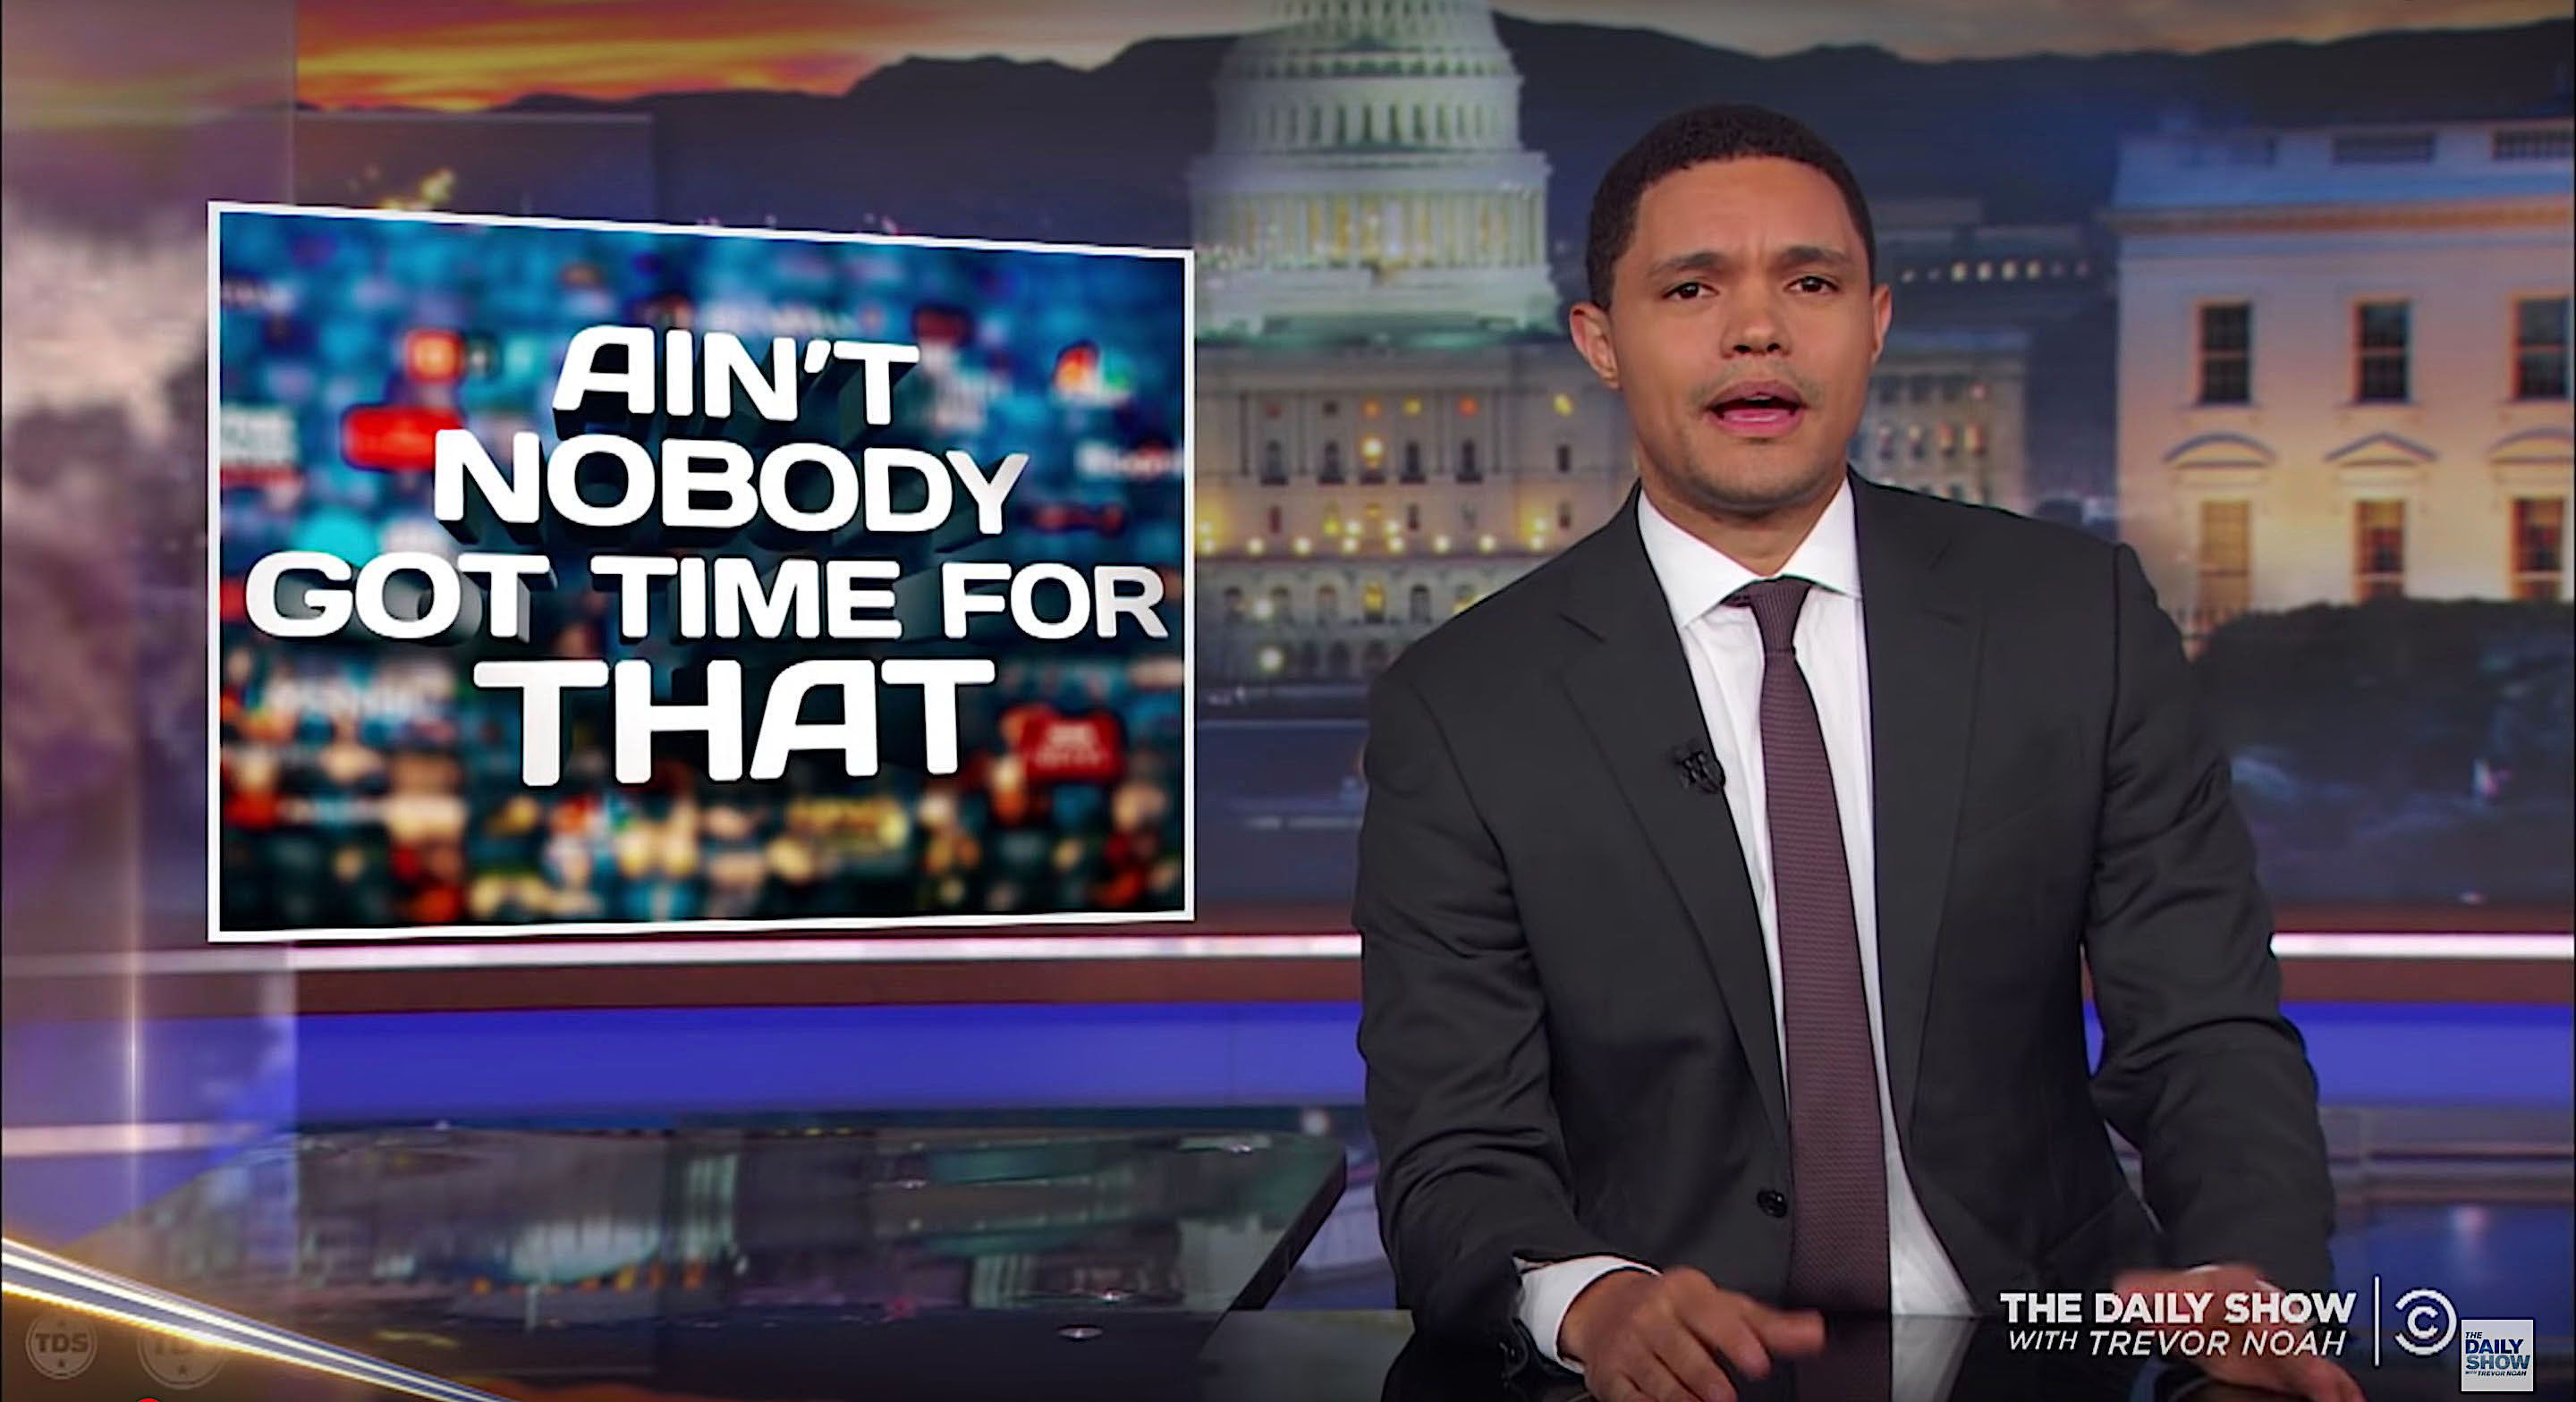 Trevor Noah of The Daily Show weighs in on Burger King and Melania Trumps jacket